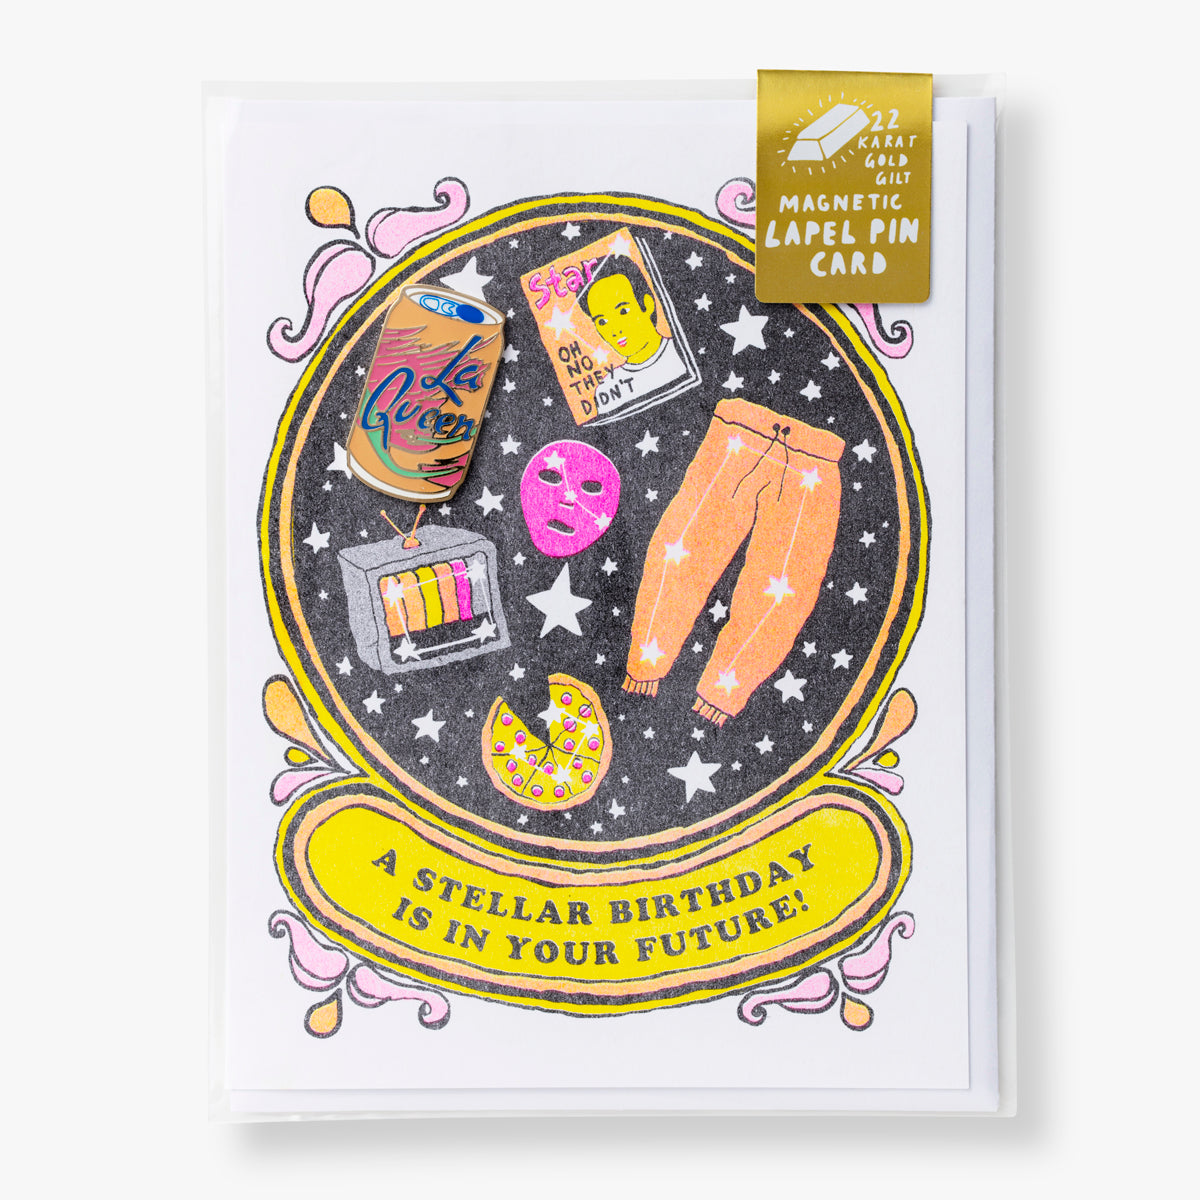 Stellar Birthday - Lapel Pin Card